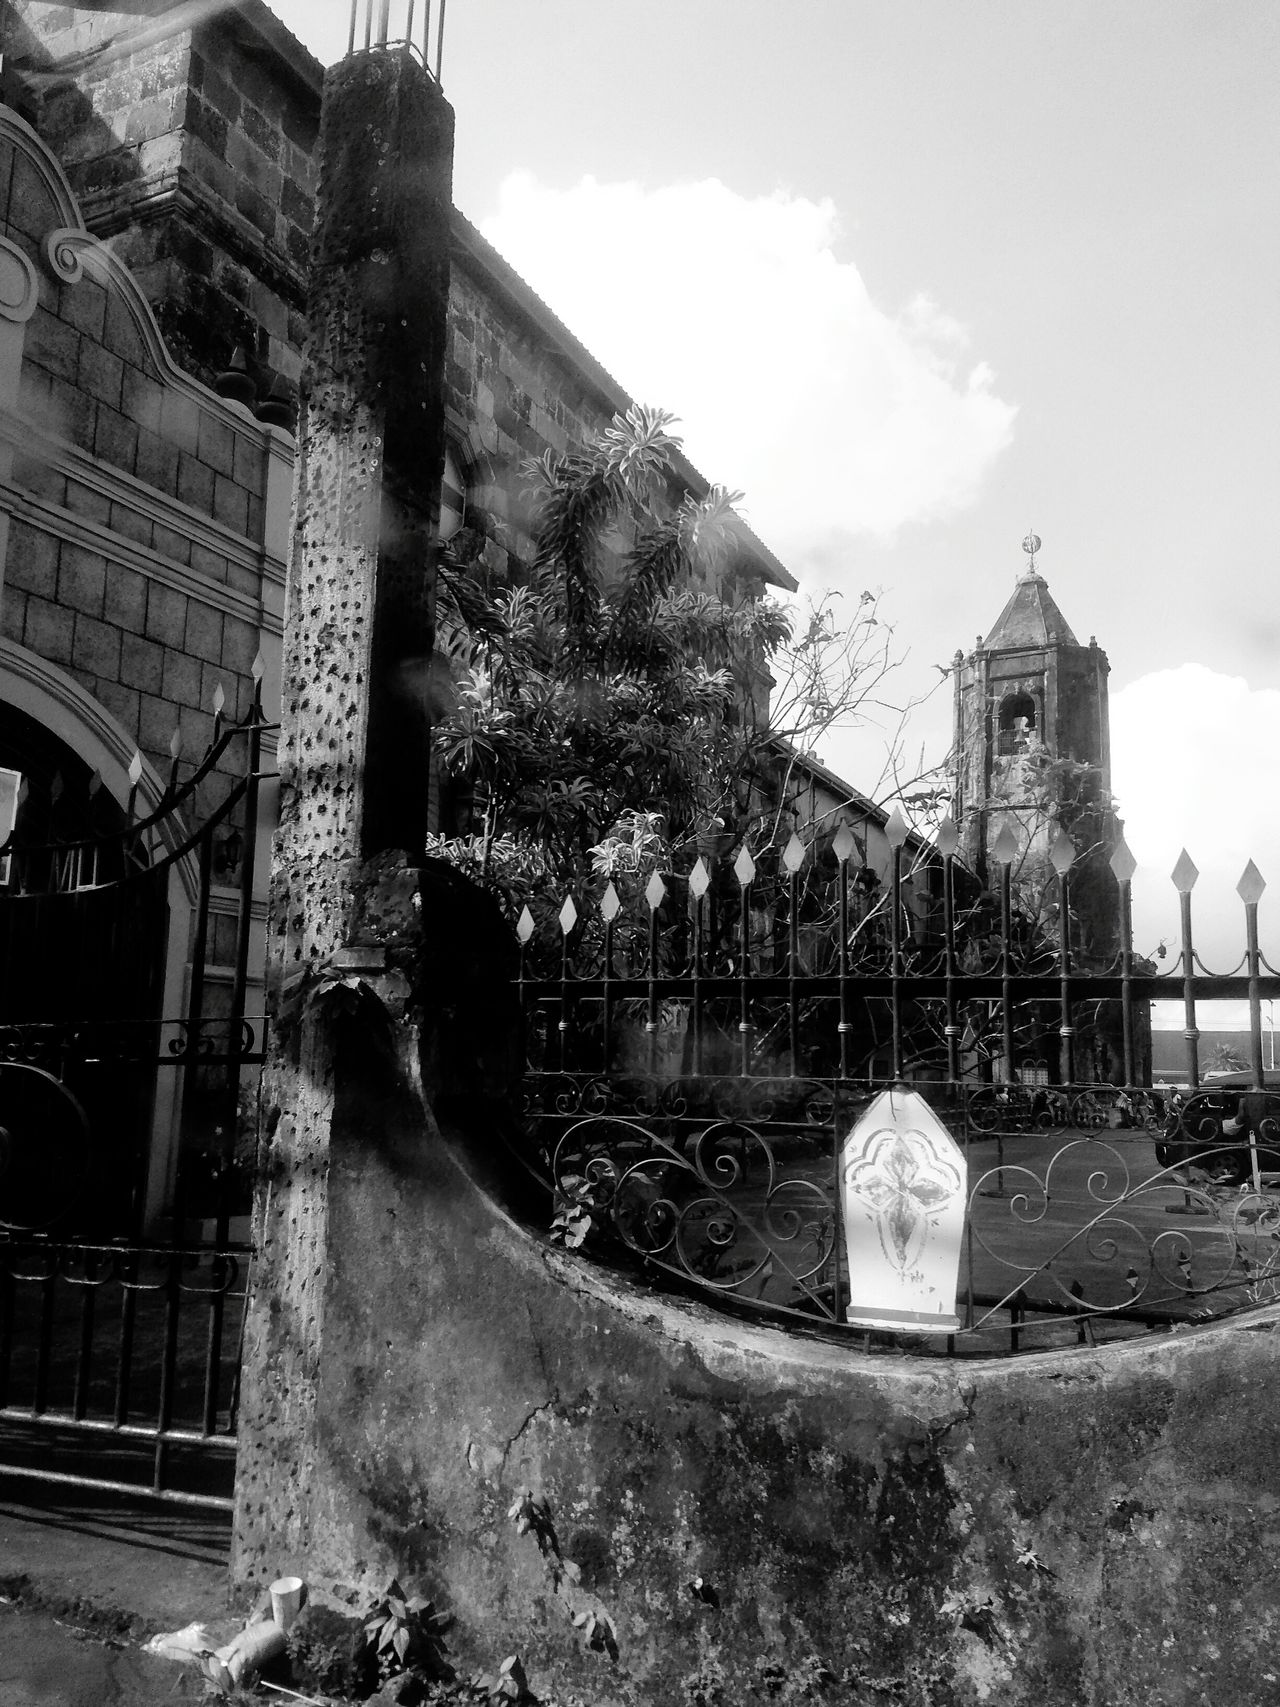 Sanluisobispodetolosa Churchyard Church Architecture Spanish Style Low Angle View Outdoors Quezon Province Philippines monochrome photography